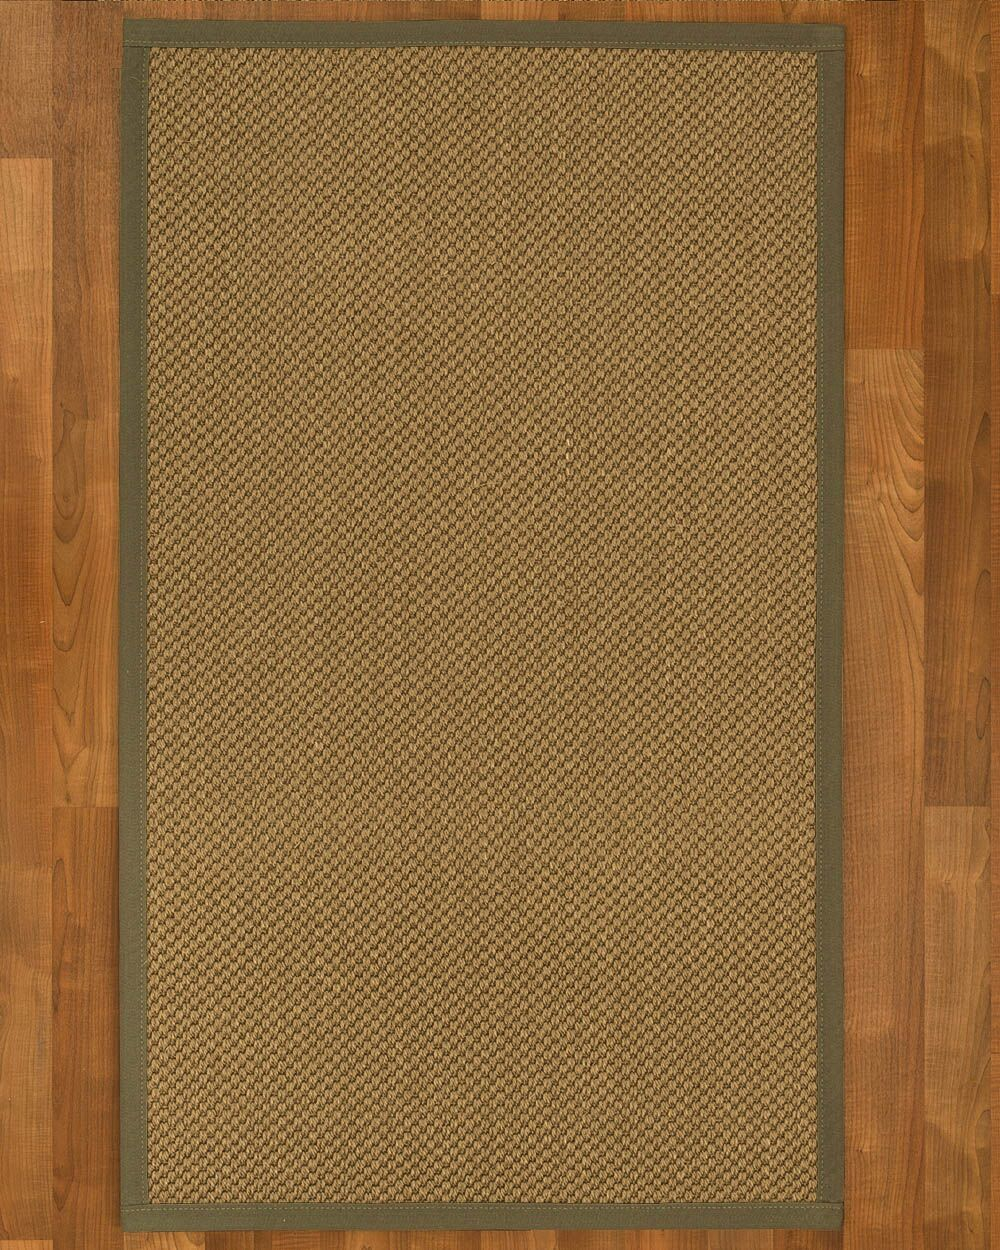 Loehr Handwoven Flatweave Brown Area Rug Rug Size: Rectangle 9' X 12'